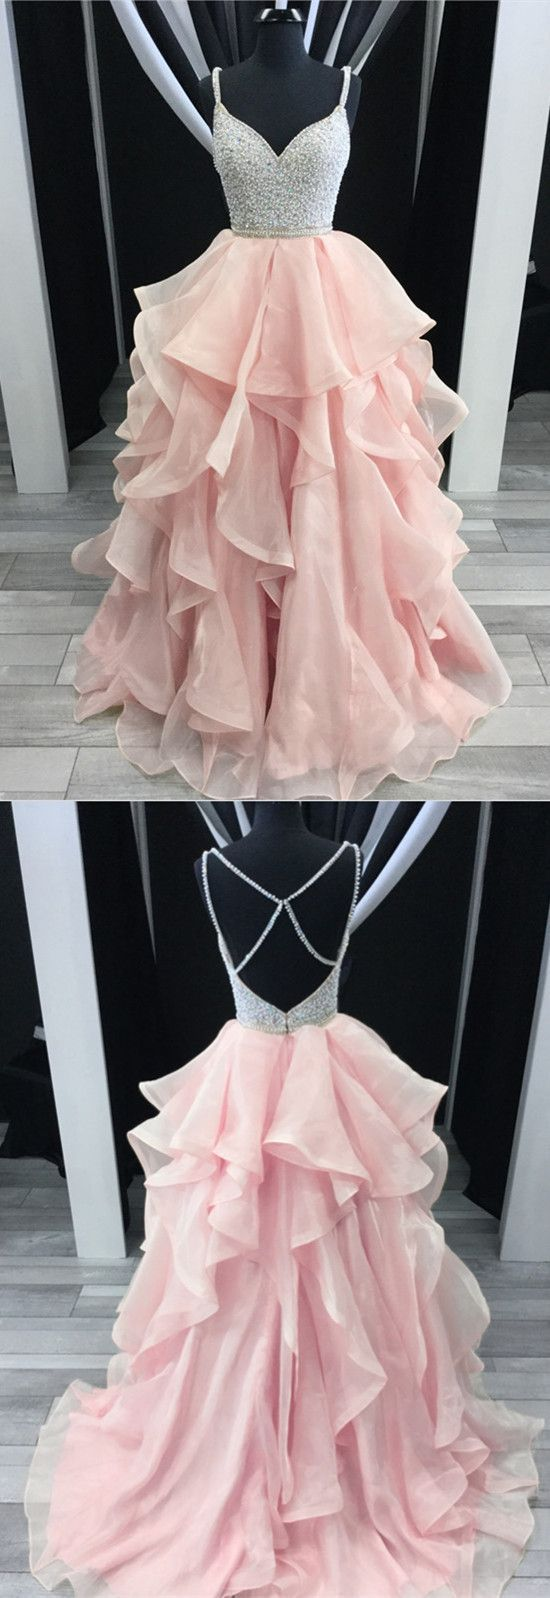 Charming beading vneck cross back pink prom dresses ball gowns